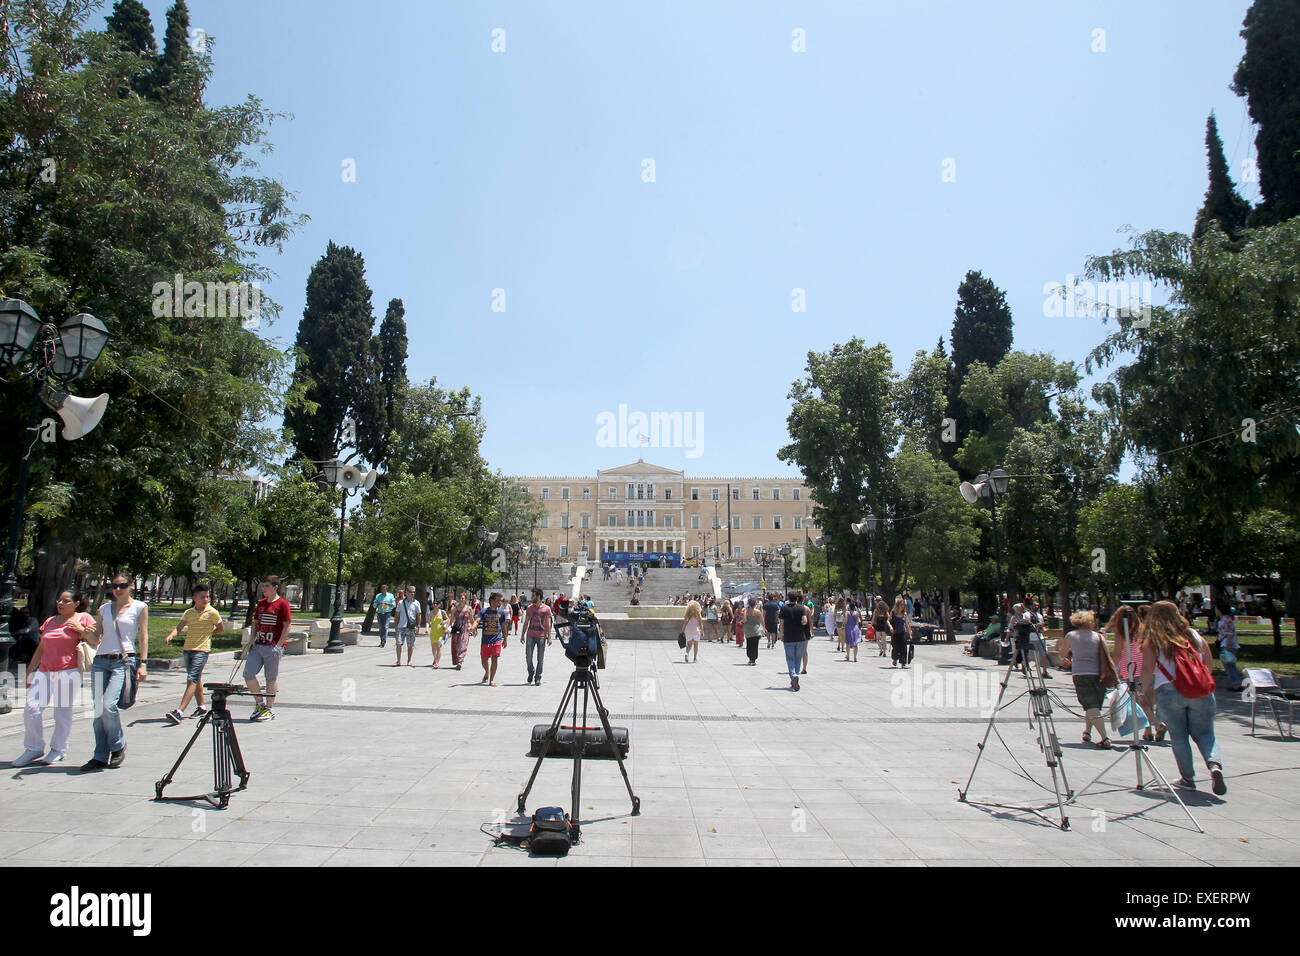 Athens, Greece. 13th July, 2015. People walk in front of the Greek Parliament in Athens, Greece, July 13, 2015. - Stock Image